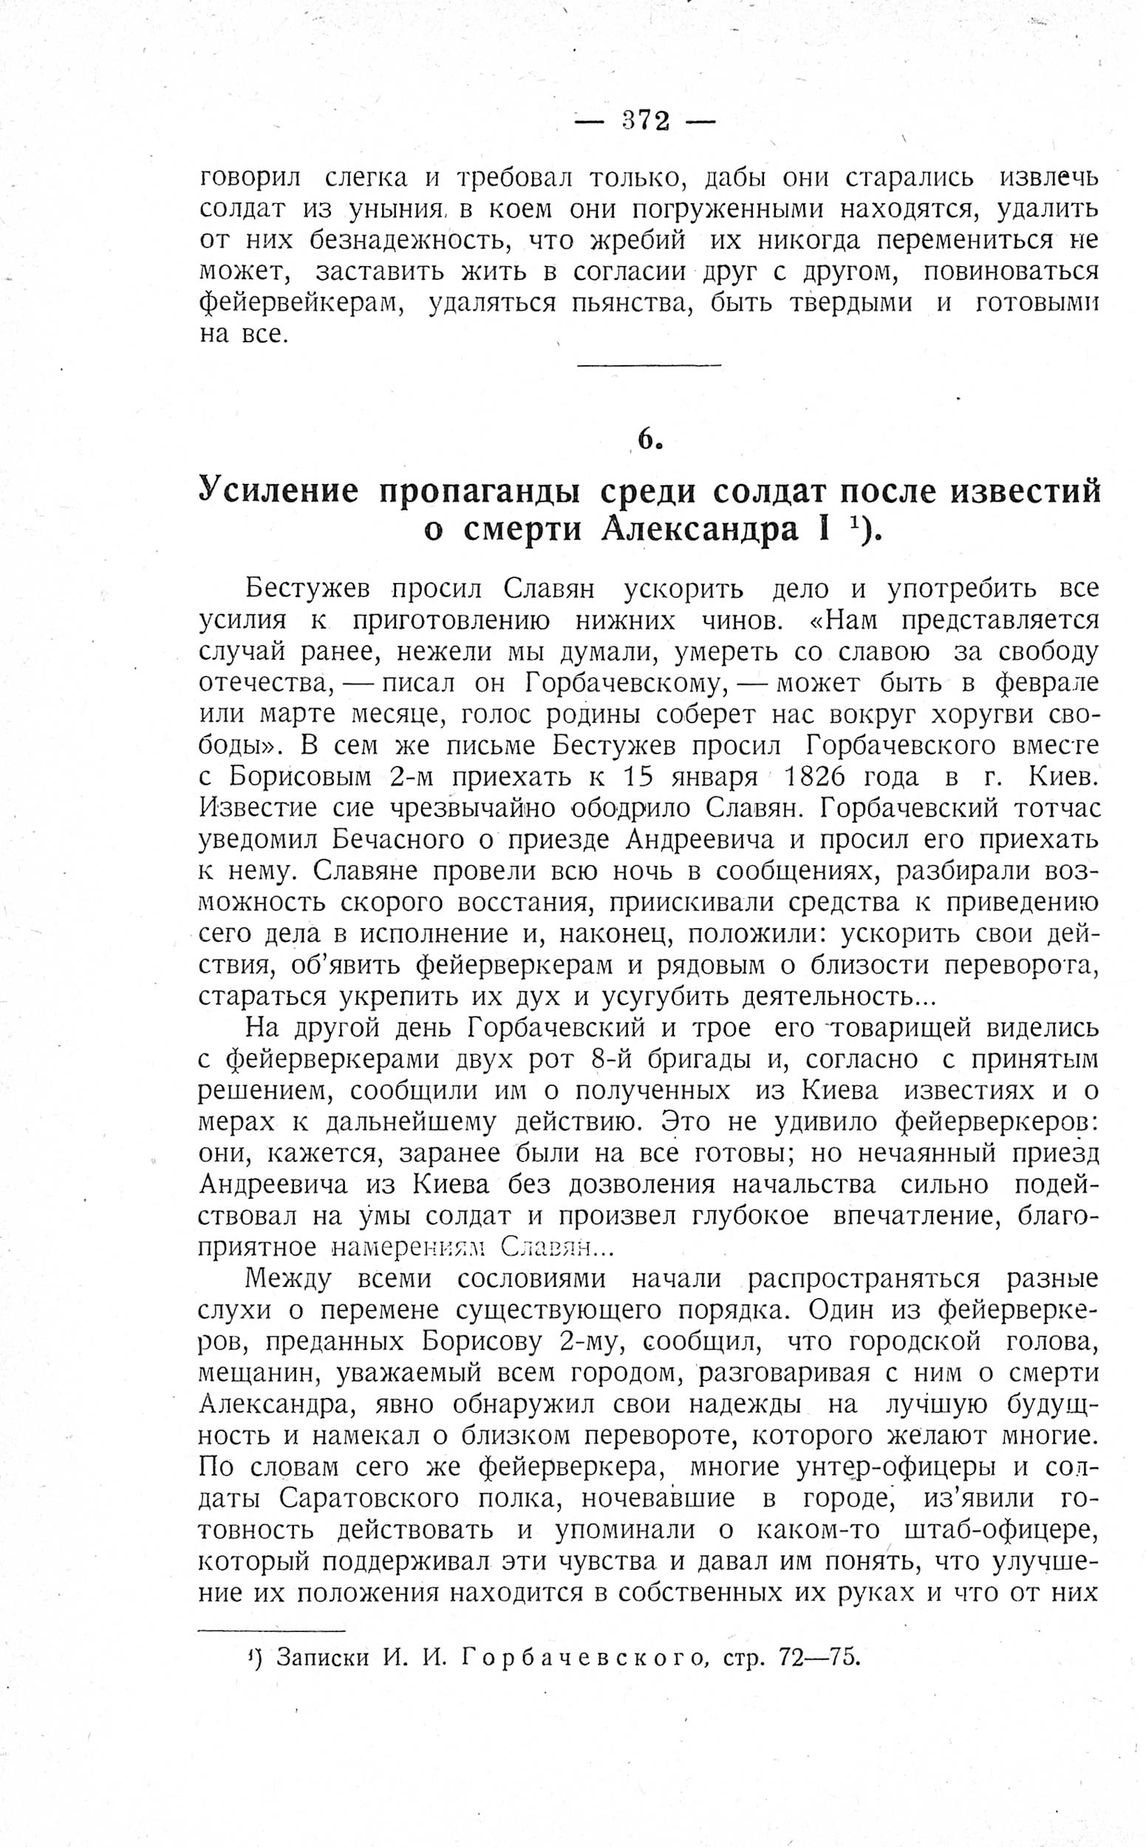 http://elib.shpl.ru/pages/625955/zooms/7